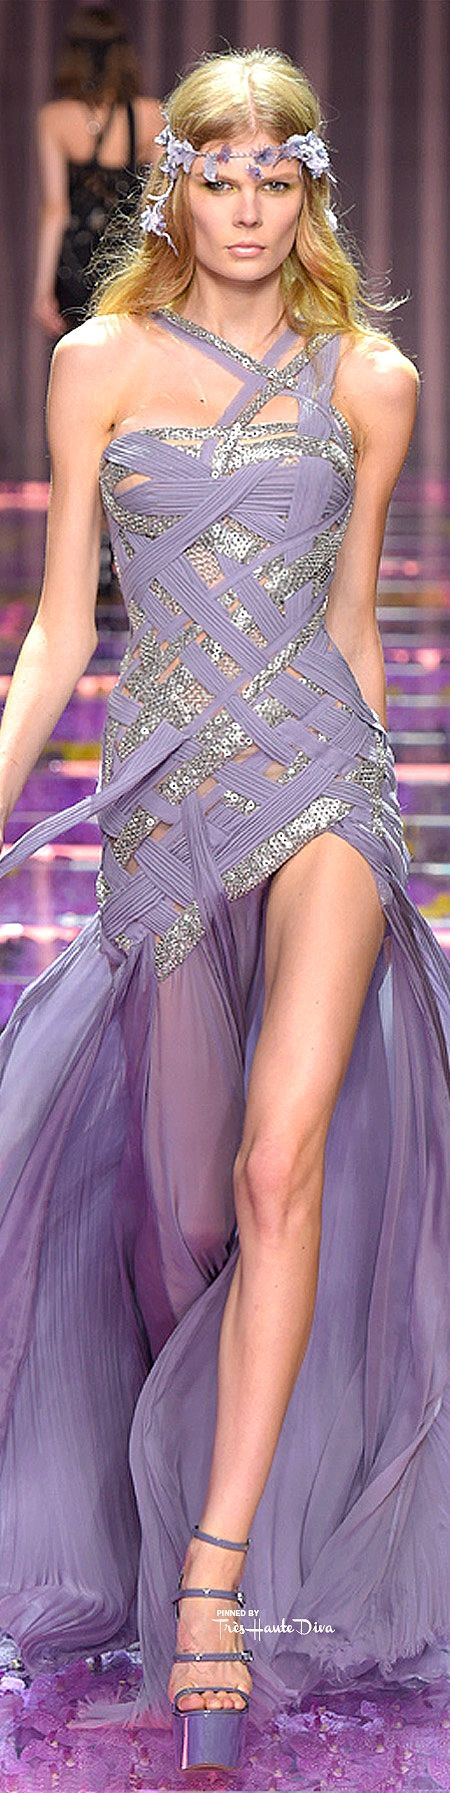 Atelier Versace Fall/Winter 2015-16 #Haute #Couture ♔ Très Haute Diva ♔ For the entire collection visit my website www.treshautediva...